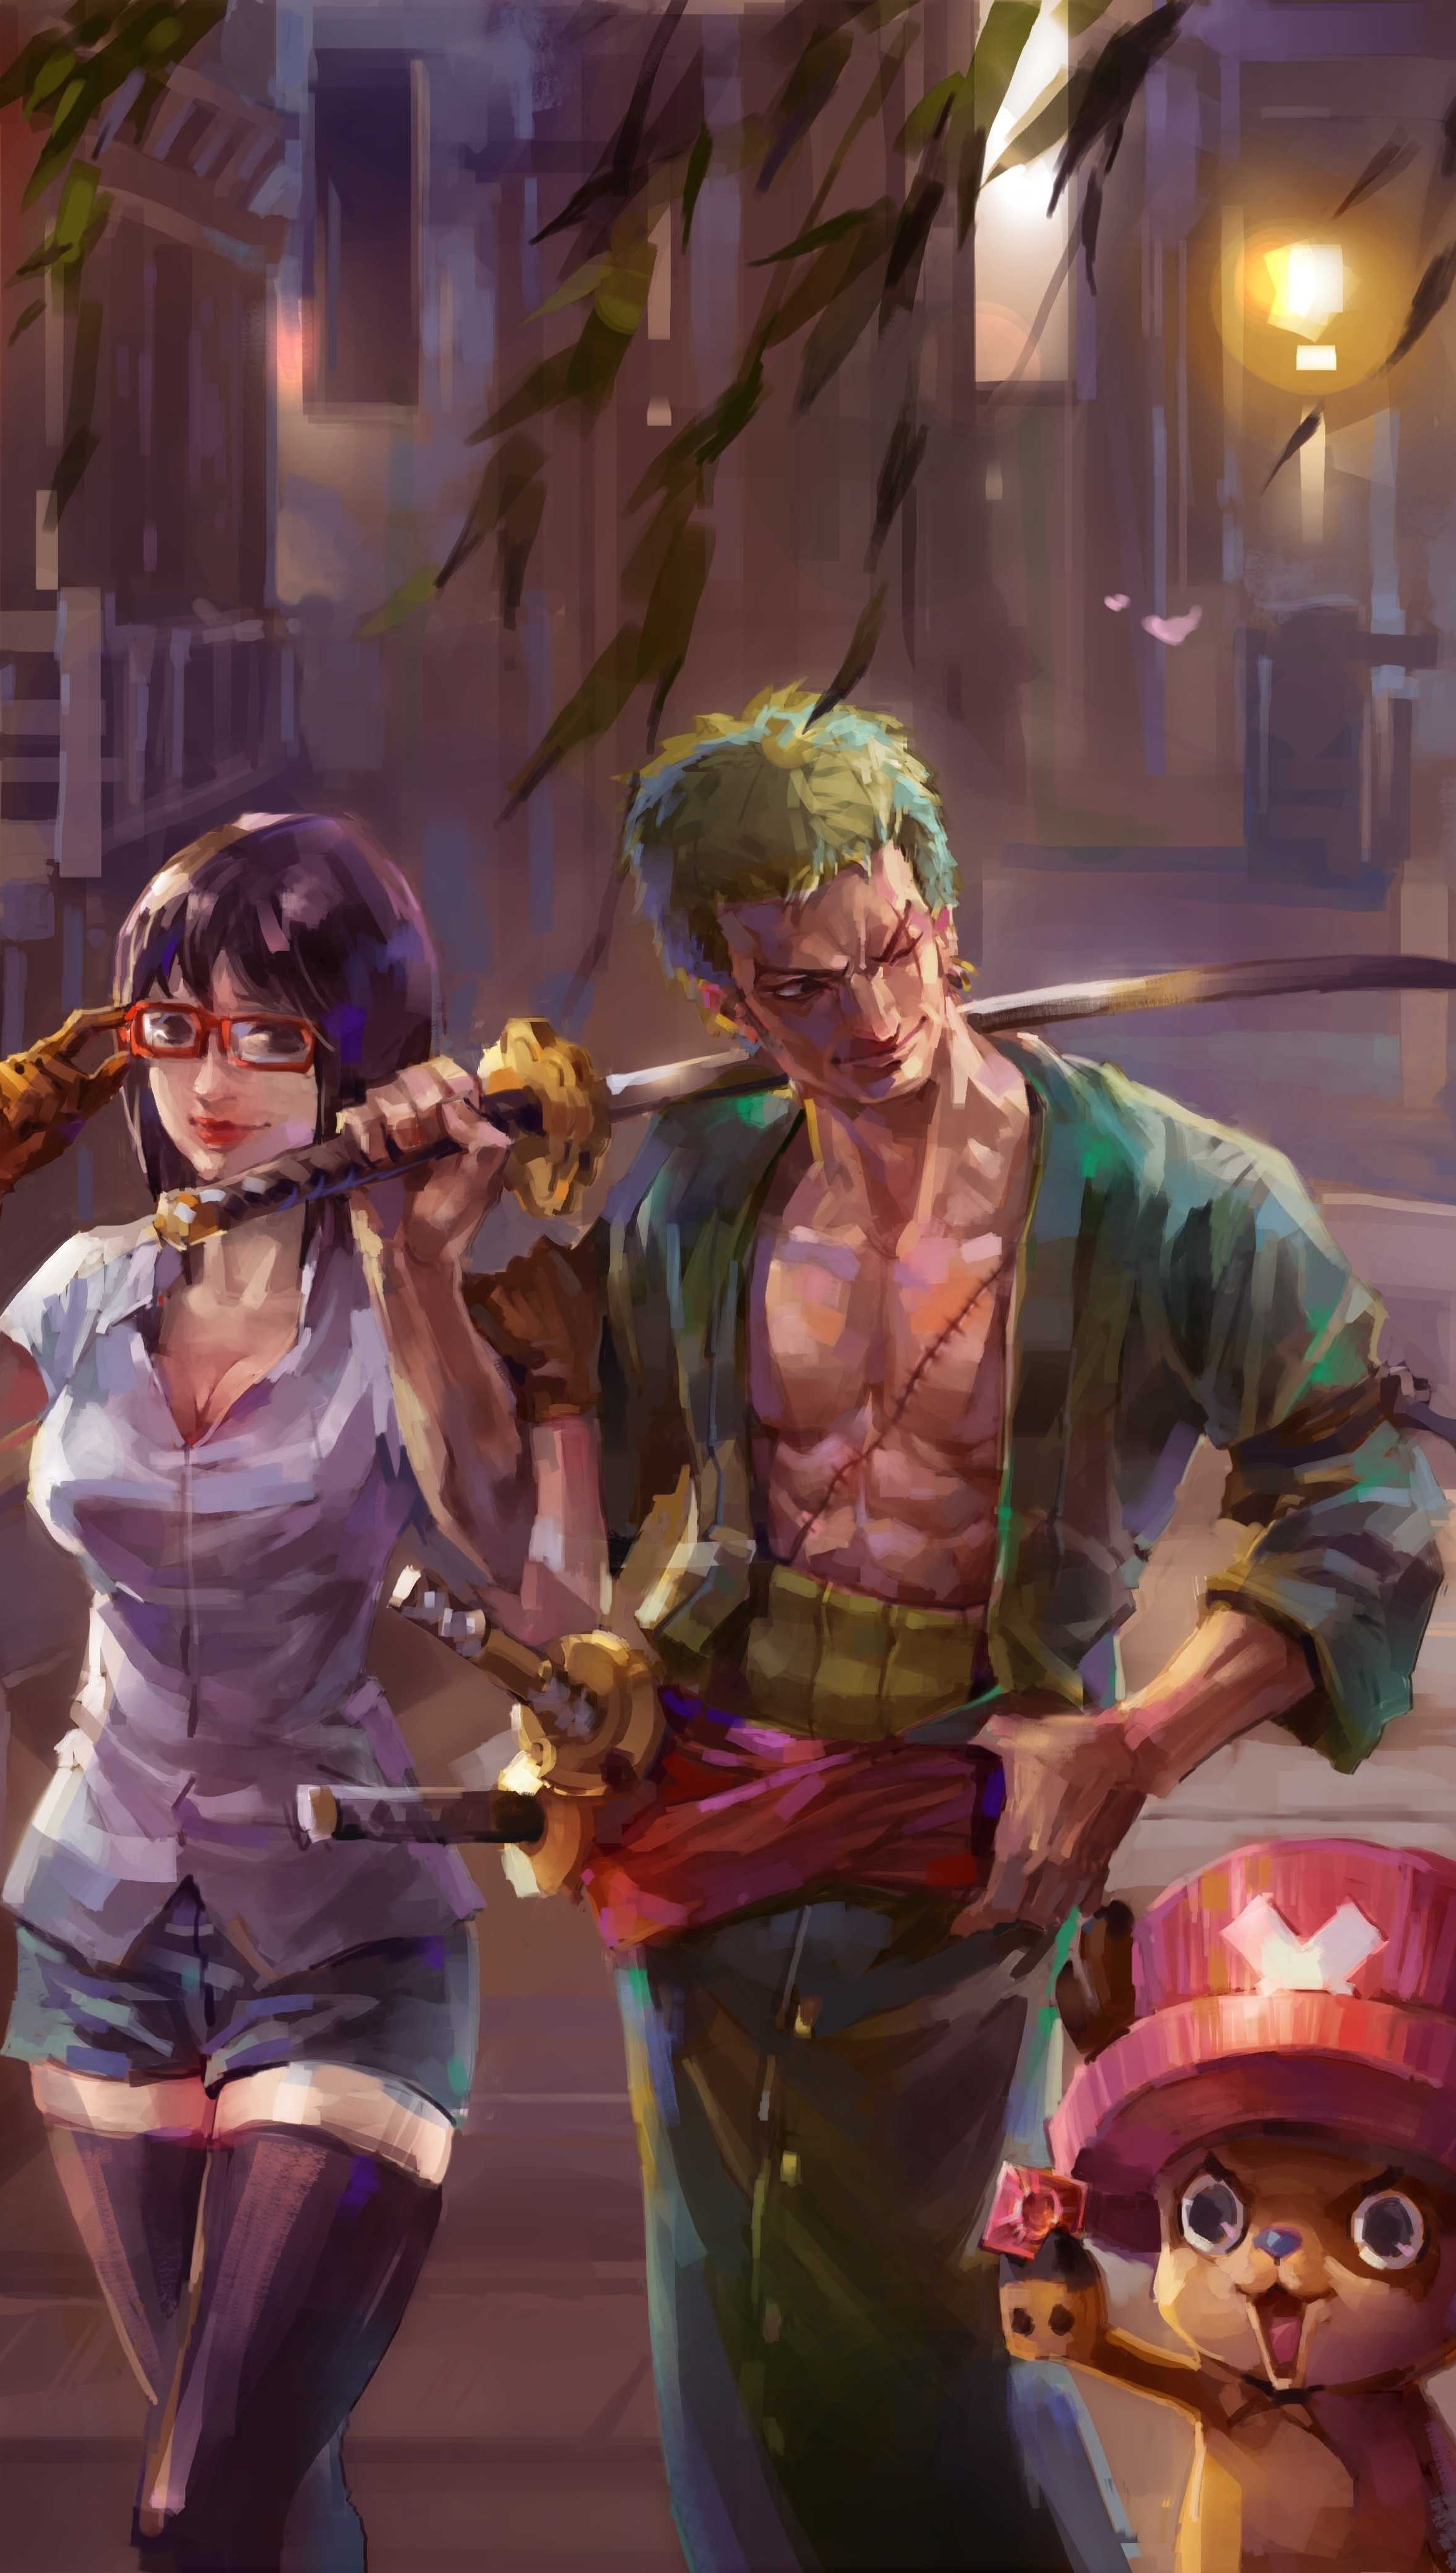 Anime Wallpaper One Piece Painting Vertical